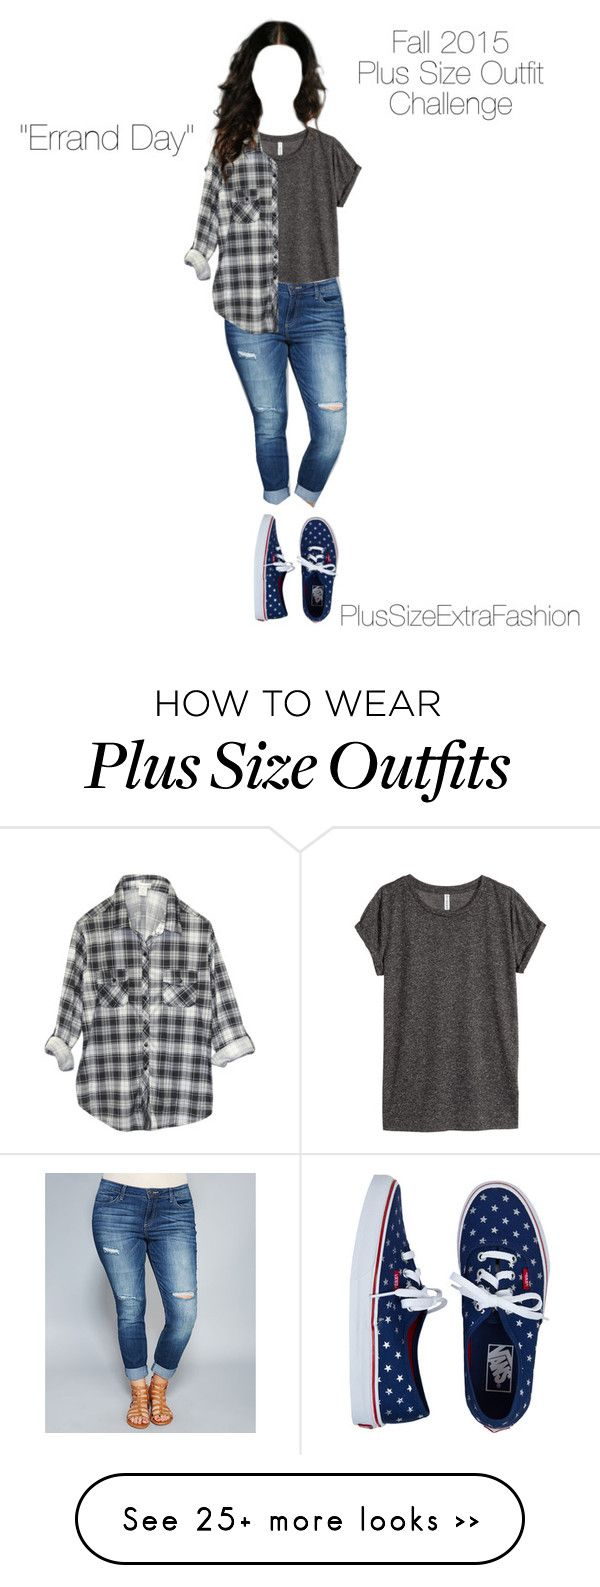 """Fall 2015 Plus Size Minimalist Challenge #9: Errand Day"" by plussizeextrafashion on Polyvore featuring H&M, Wet Seal, Vans, minimalism, challenge, plussize, fall2015 and plussizeextrafashion"